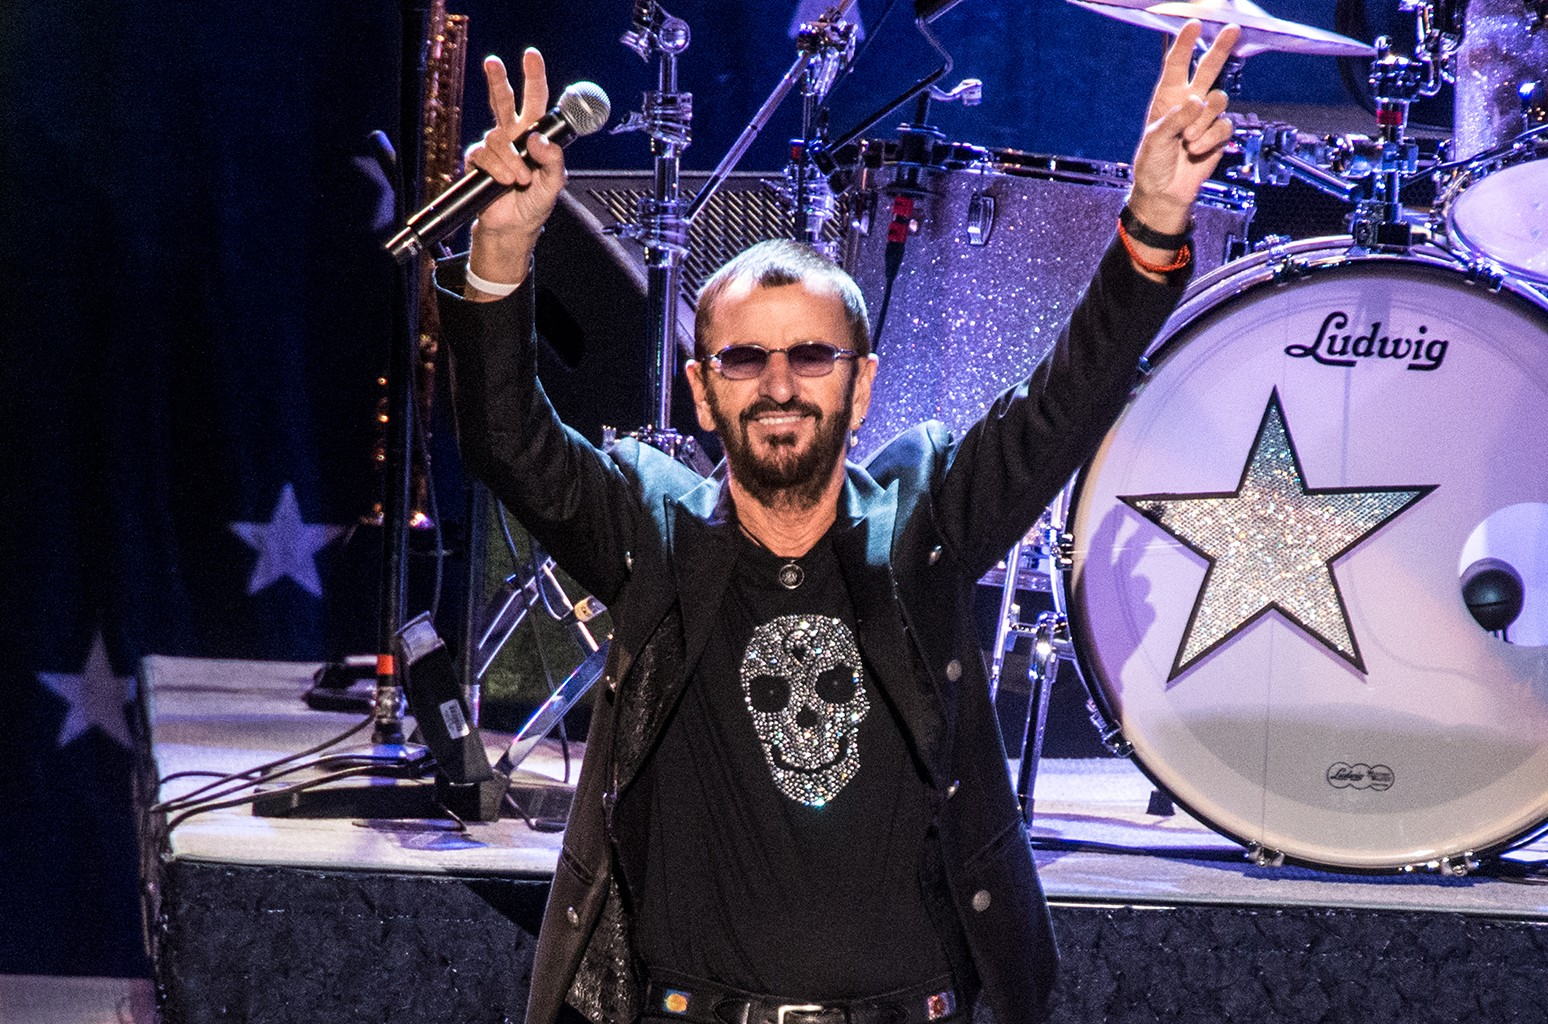 Ringo Starr performs in New York City.